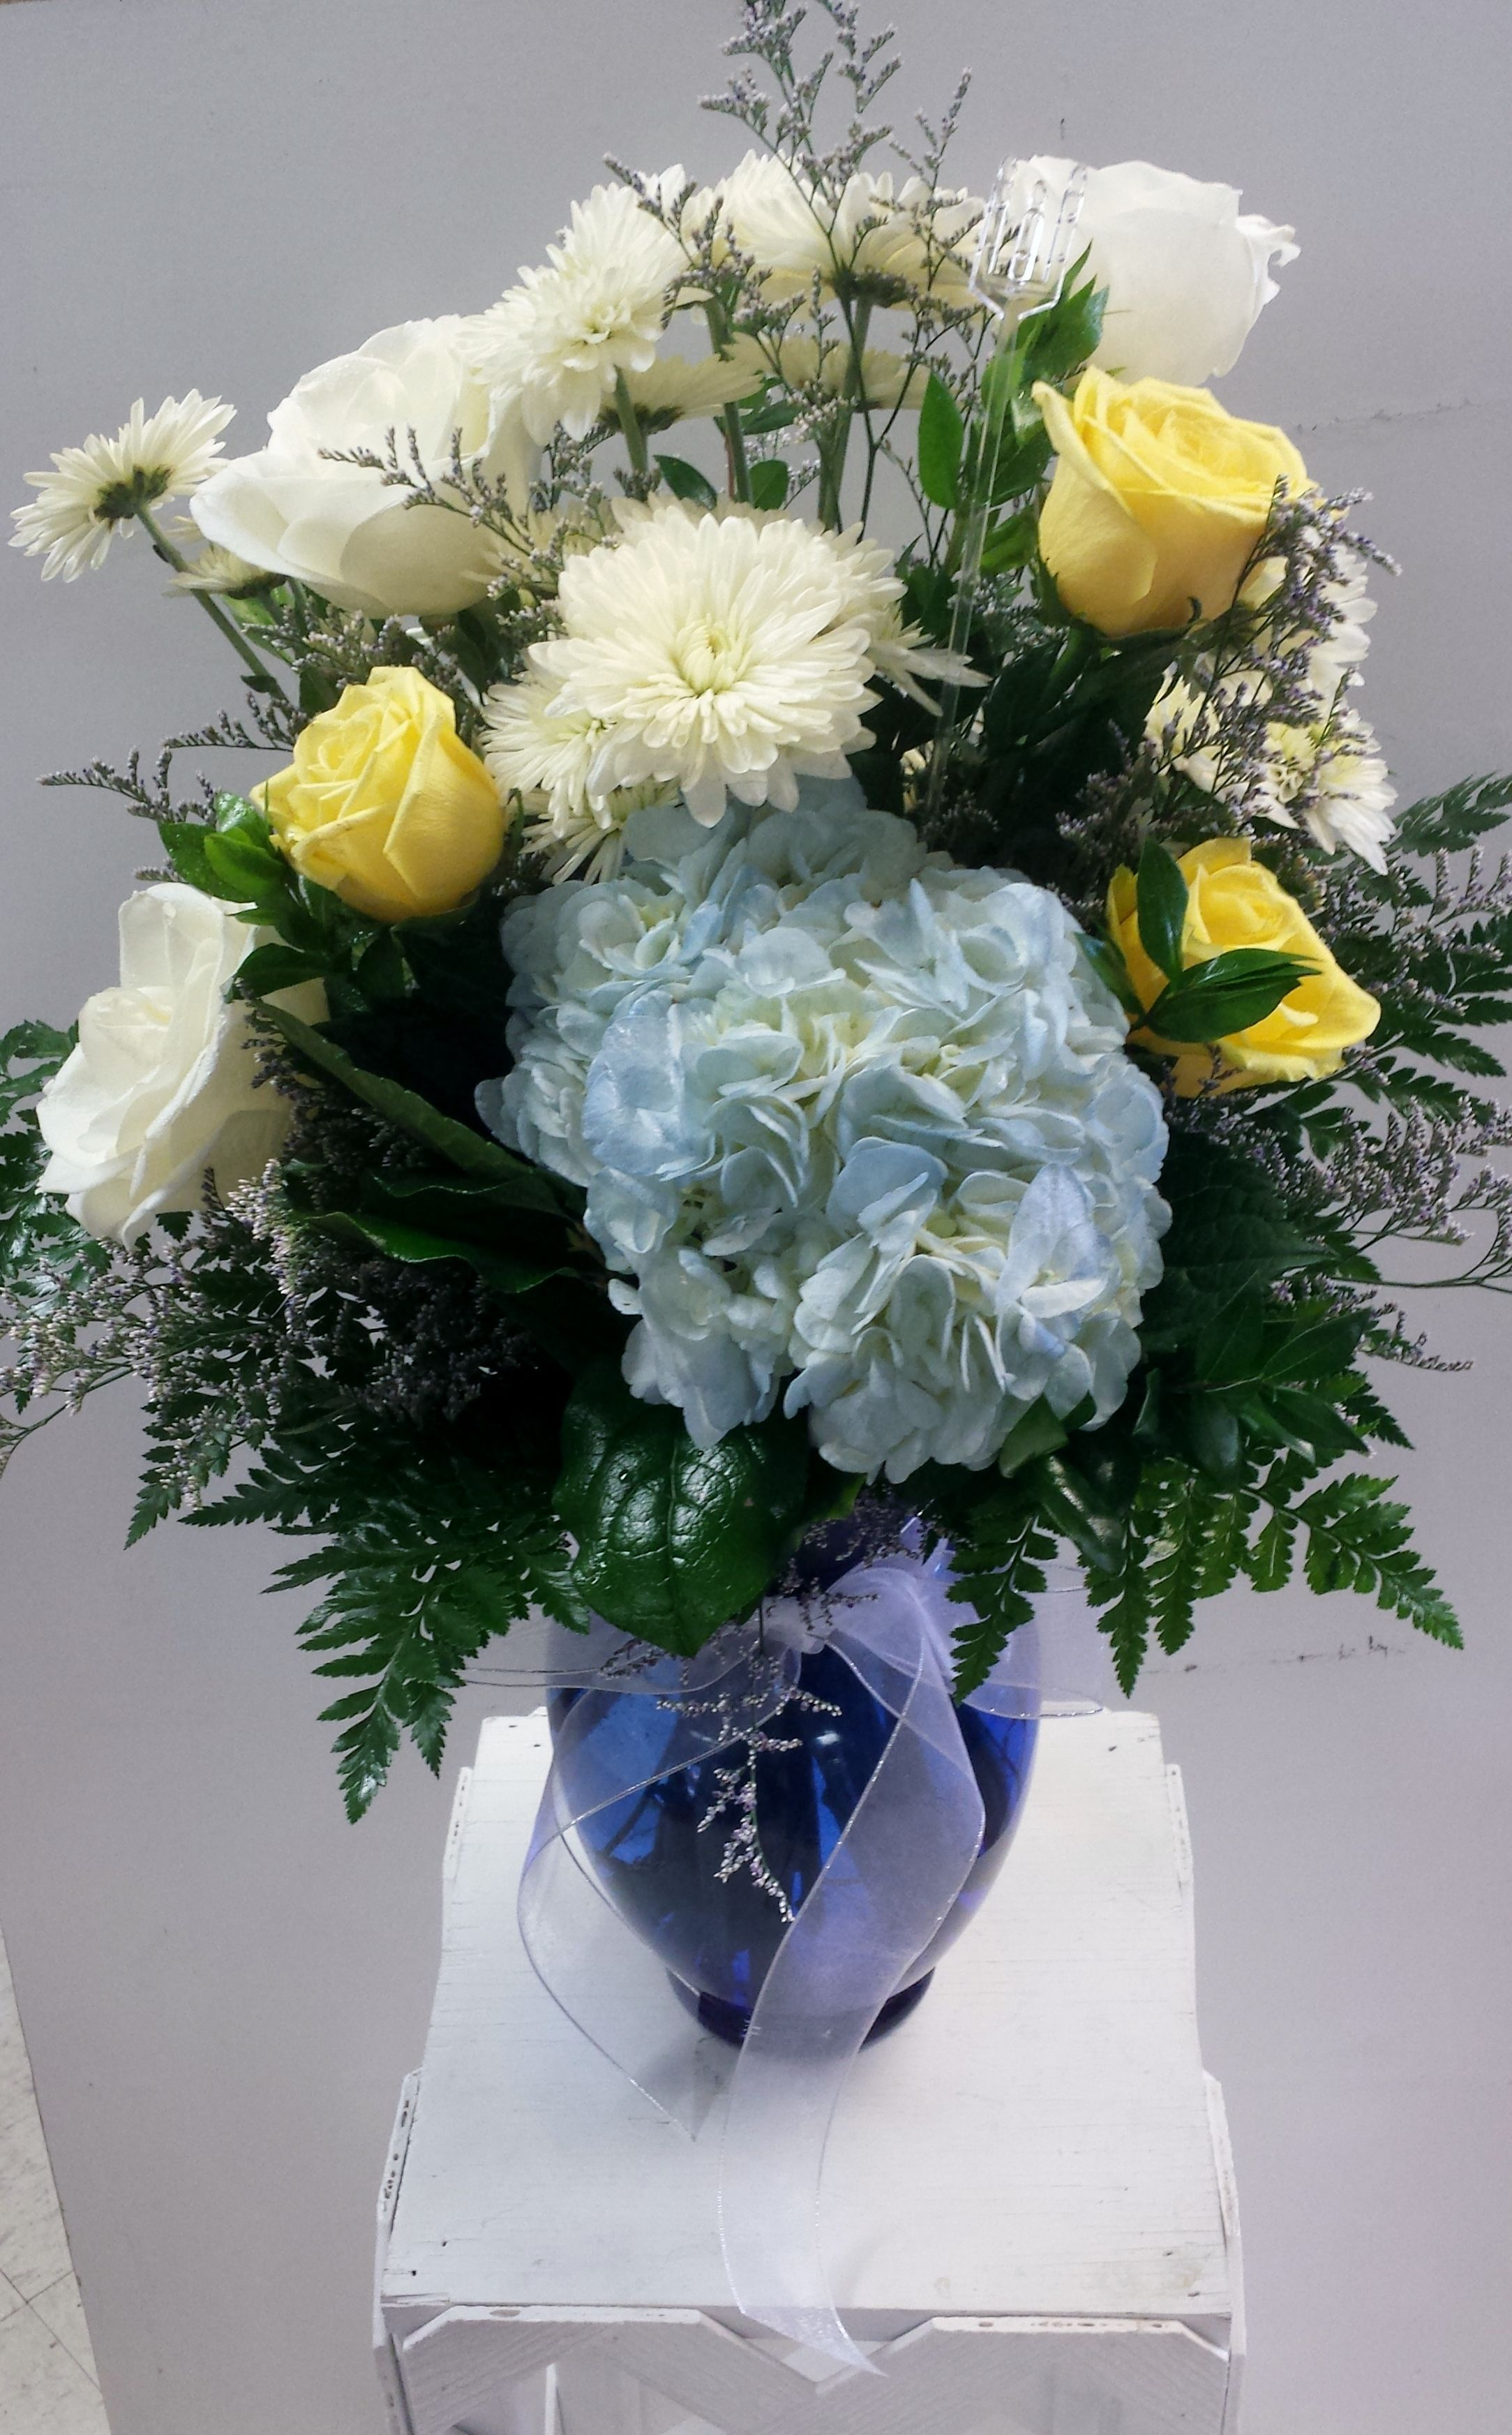 Beautiful Blue And White Arrangements With Pops Of Yellow Roses